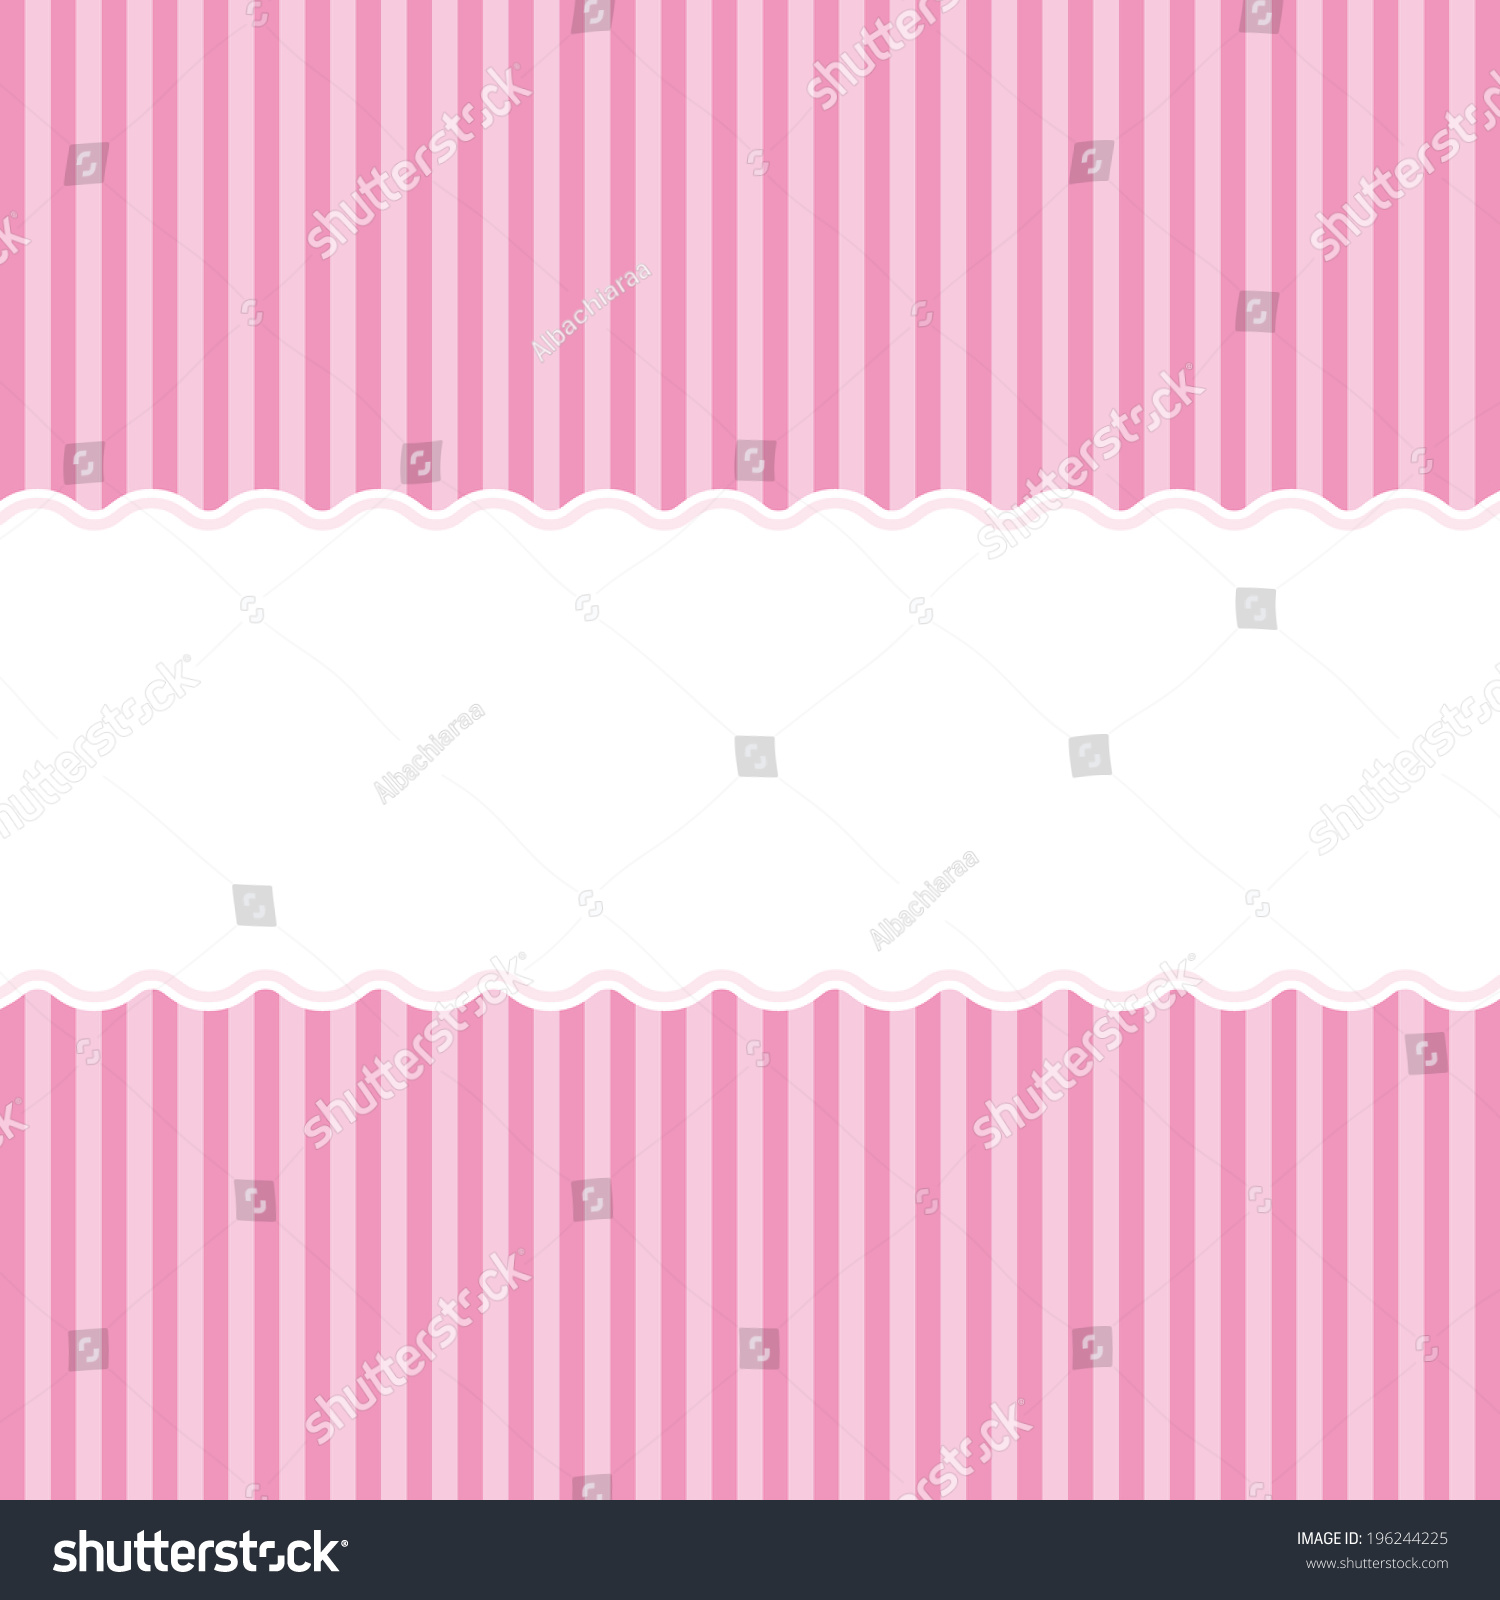 pink birth announcement or baby shower invitation card background for